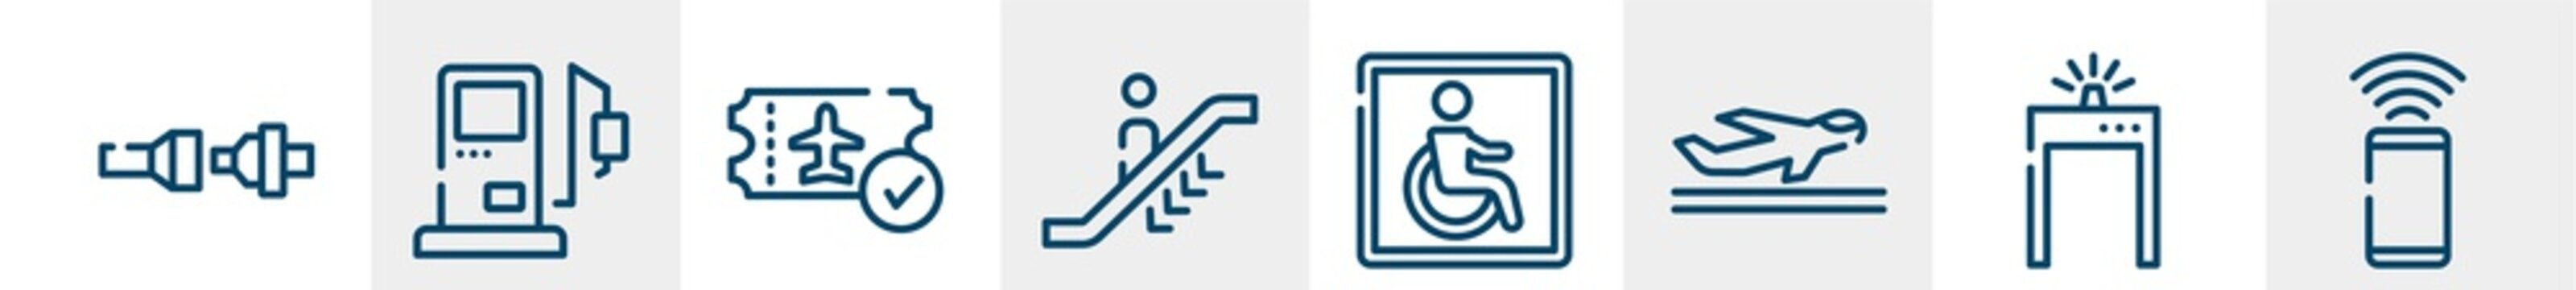 airport and travel line icons such as fasten your seatbelts, gas station, verified boarding card, escalator going down, wheelchair accessible, smartphone with wifi outline vector sign. symbol, logo